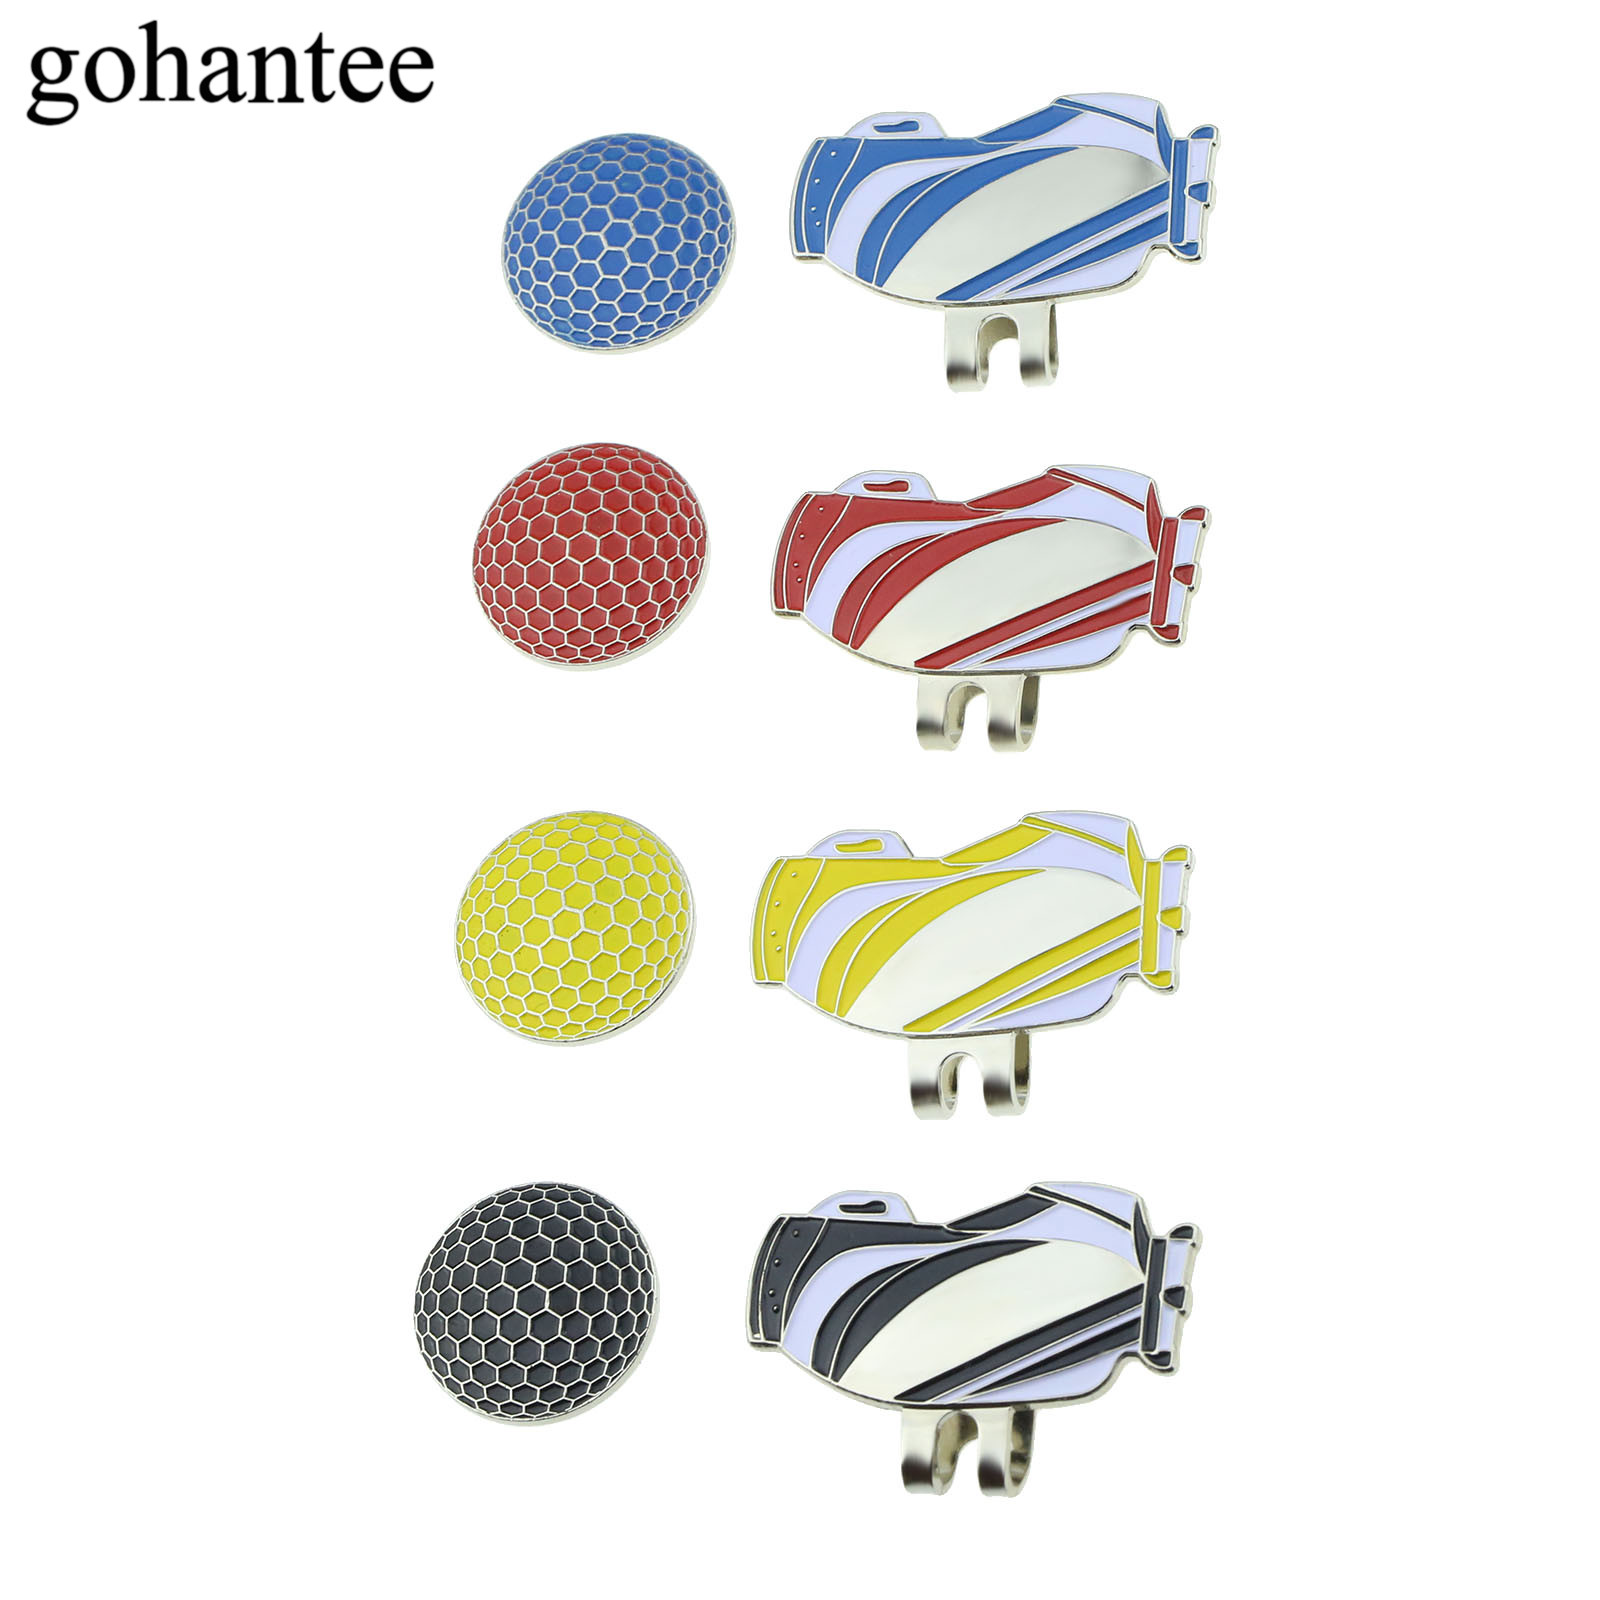 Gohantee Portable Golf Bag Pattern Alloy Golf Magnetic Balls Mark With Hat Visor Clip Golf Accessories 4 Colors Hat Decoration